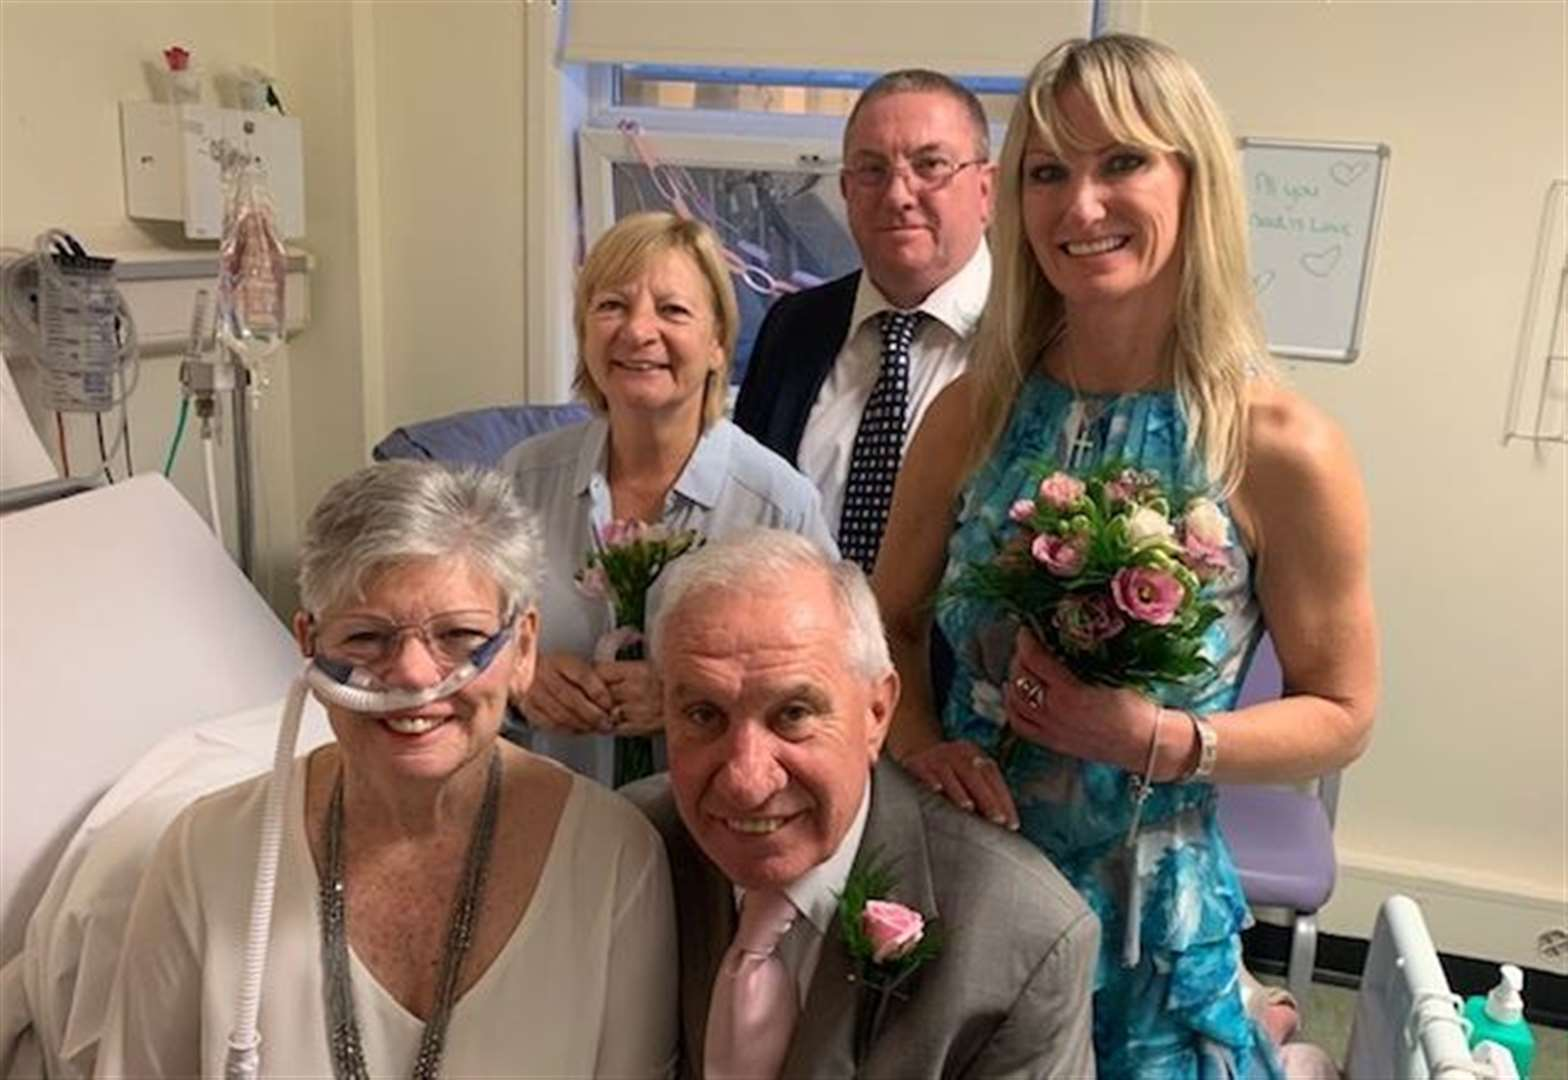 Dying mum marries partner of 40 years in hospital